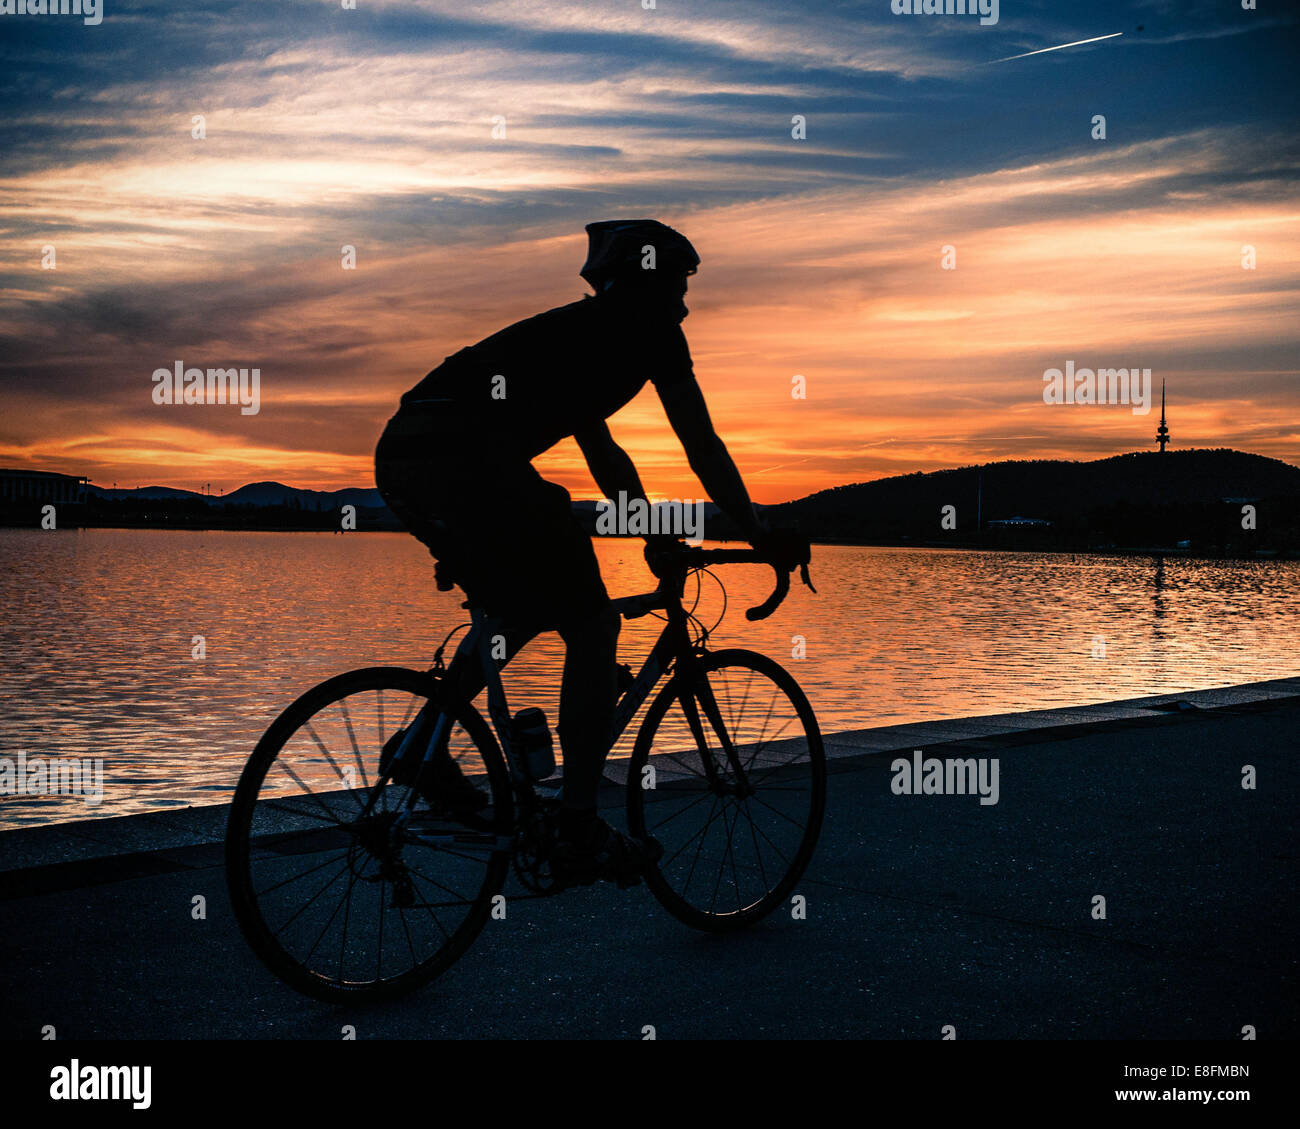 Silhouette of cyclist at sunset near Lake Burley Griffin, Canberra, Australia - Stock Image